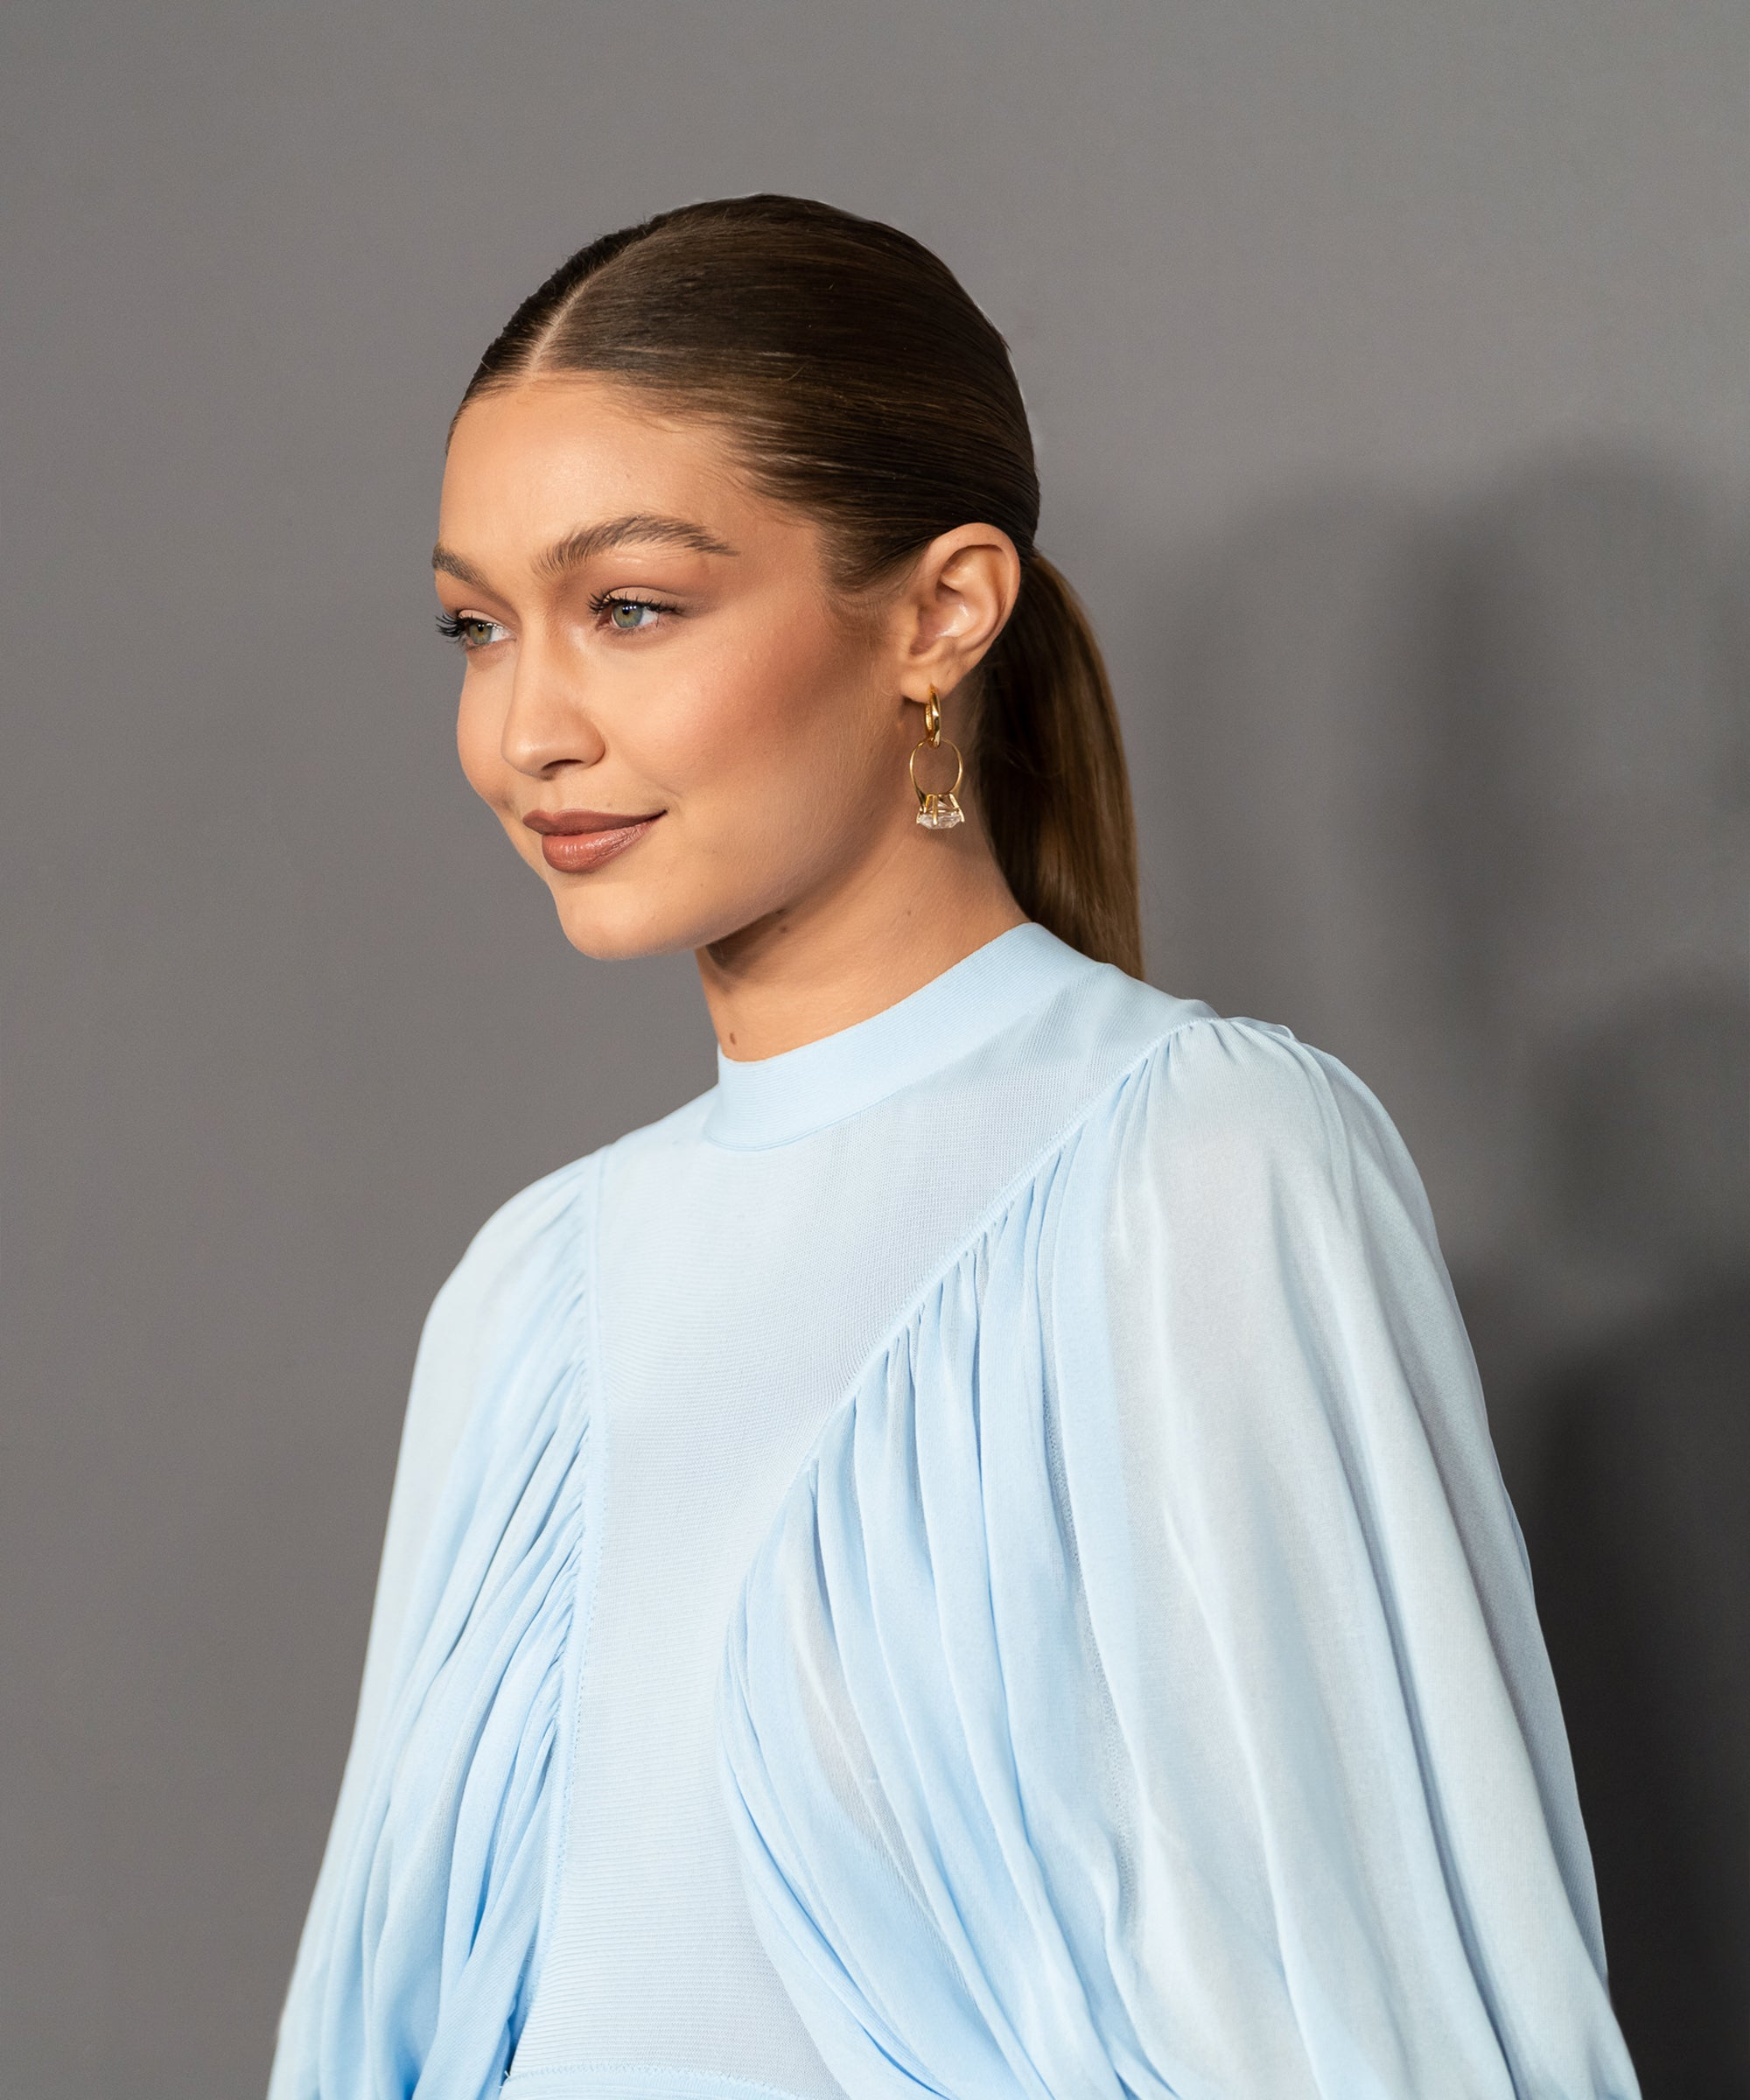 Gigi Hadid Was Called As A Possible Juror For Harvey Weinstein